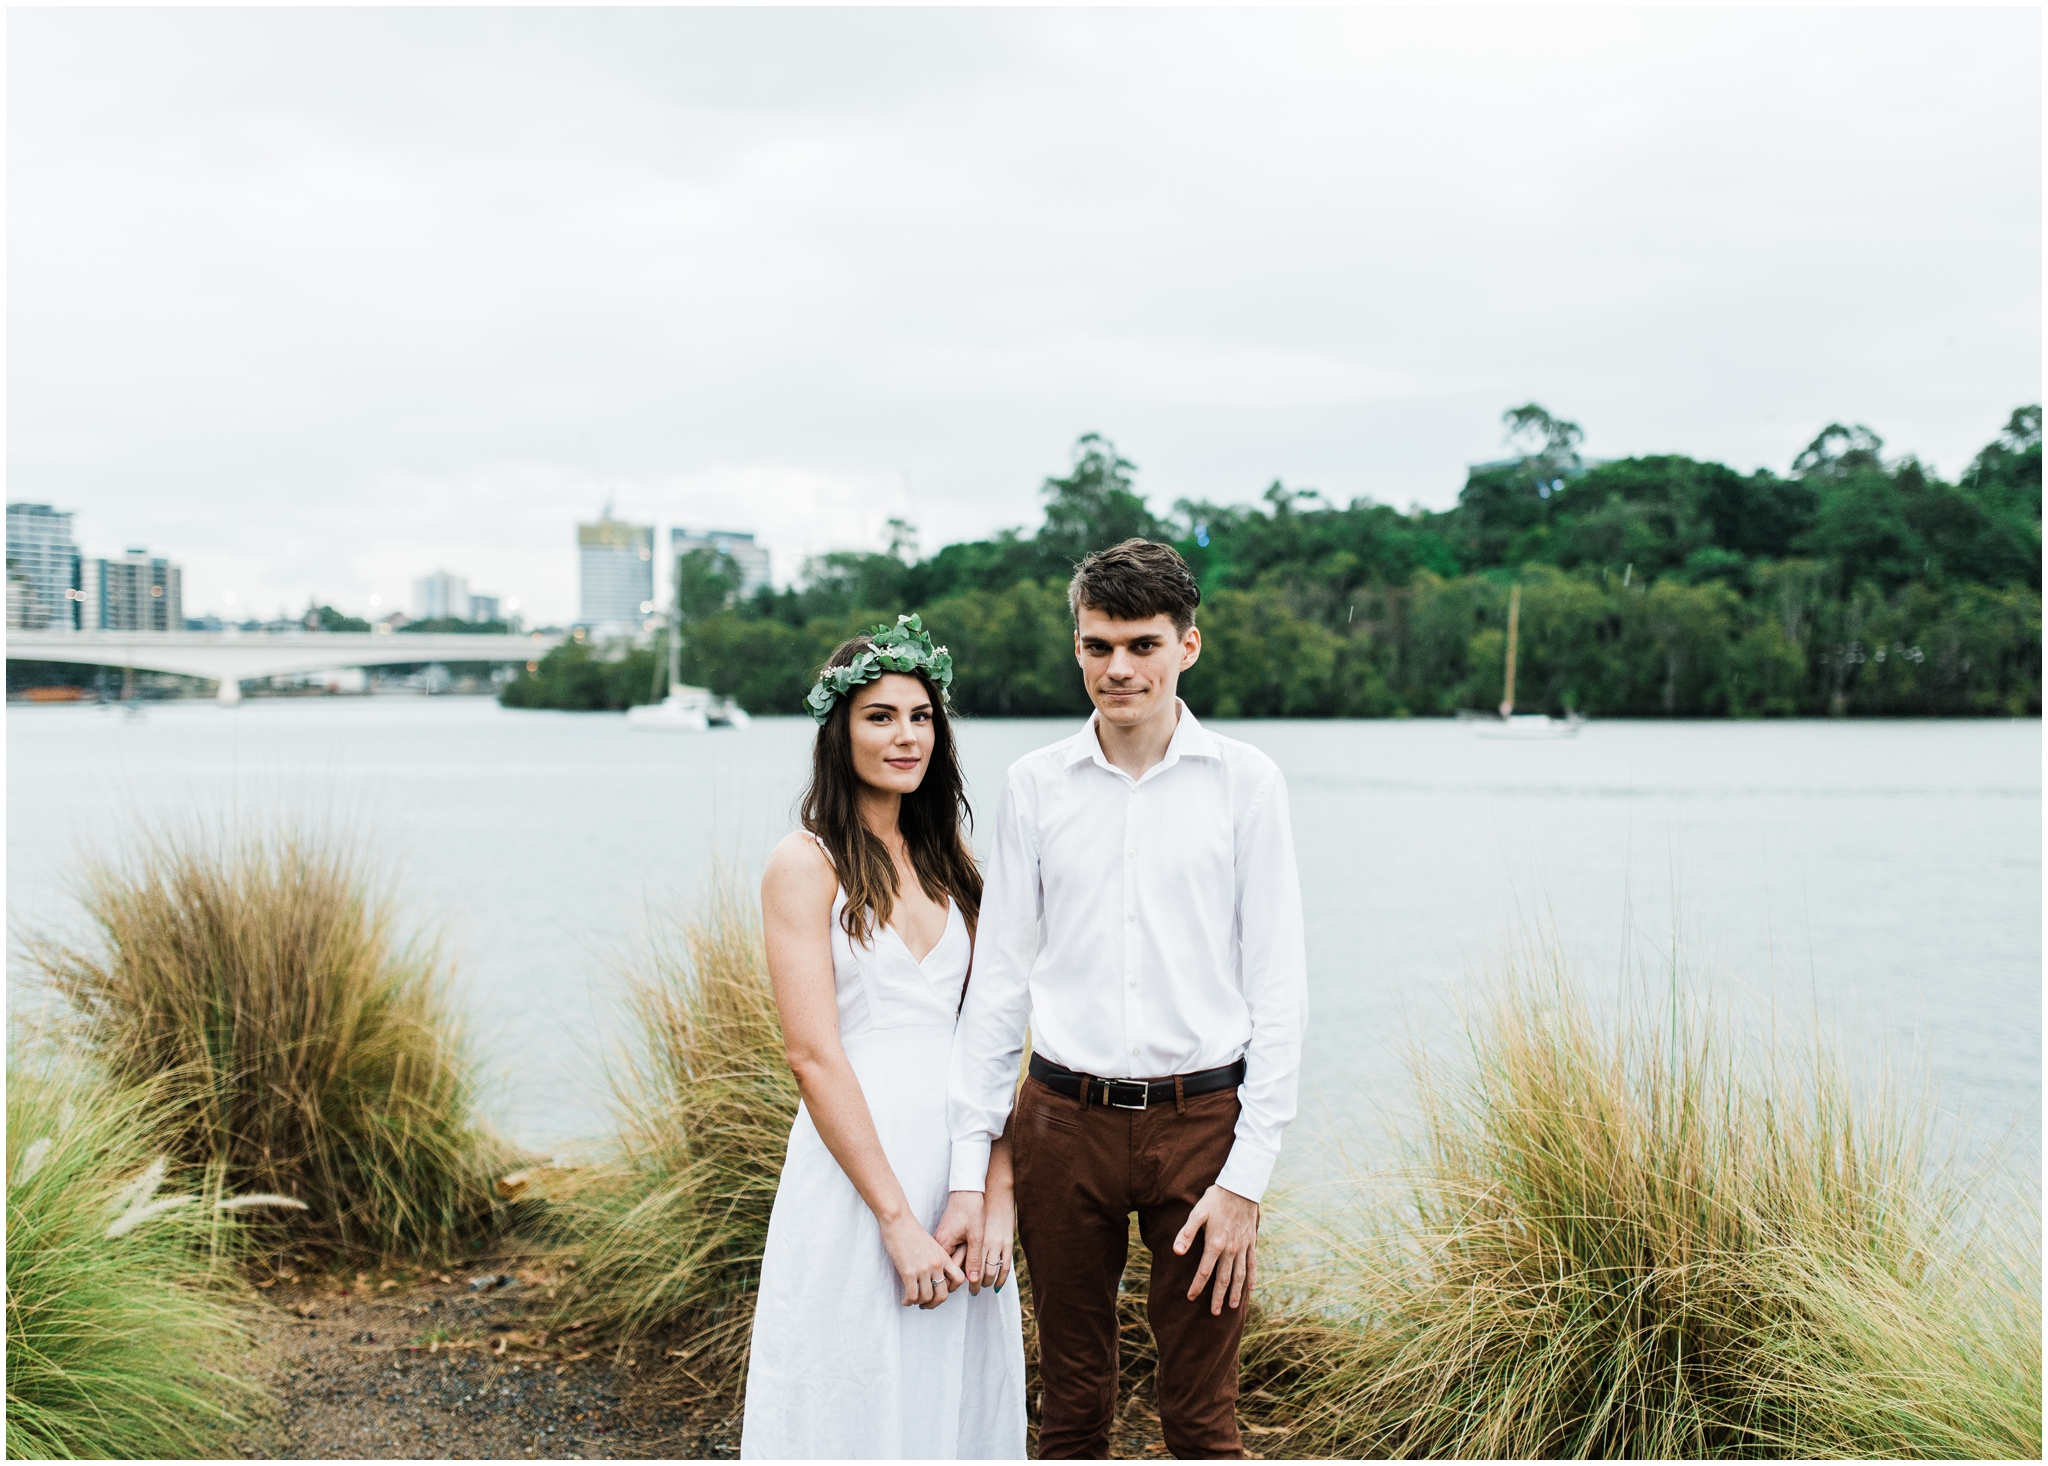 Brisbane-City-Engagement-Session16.jpg